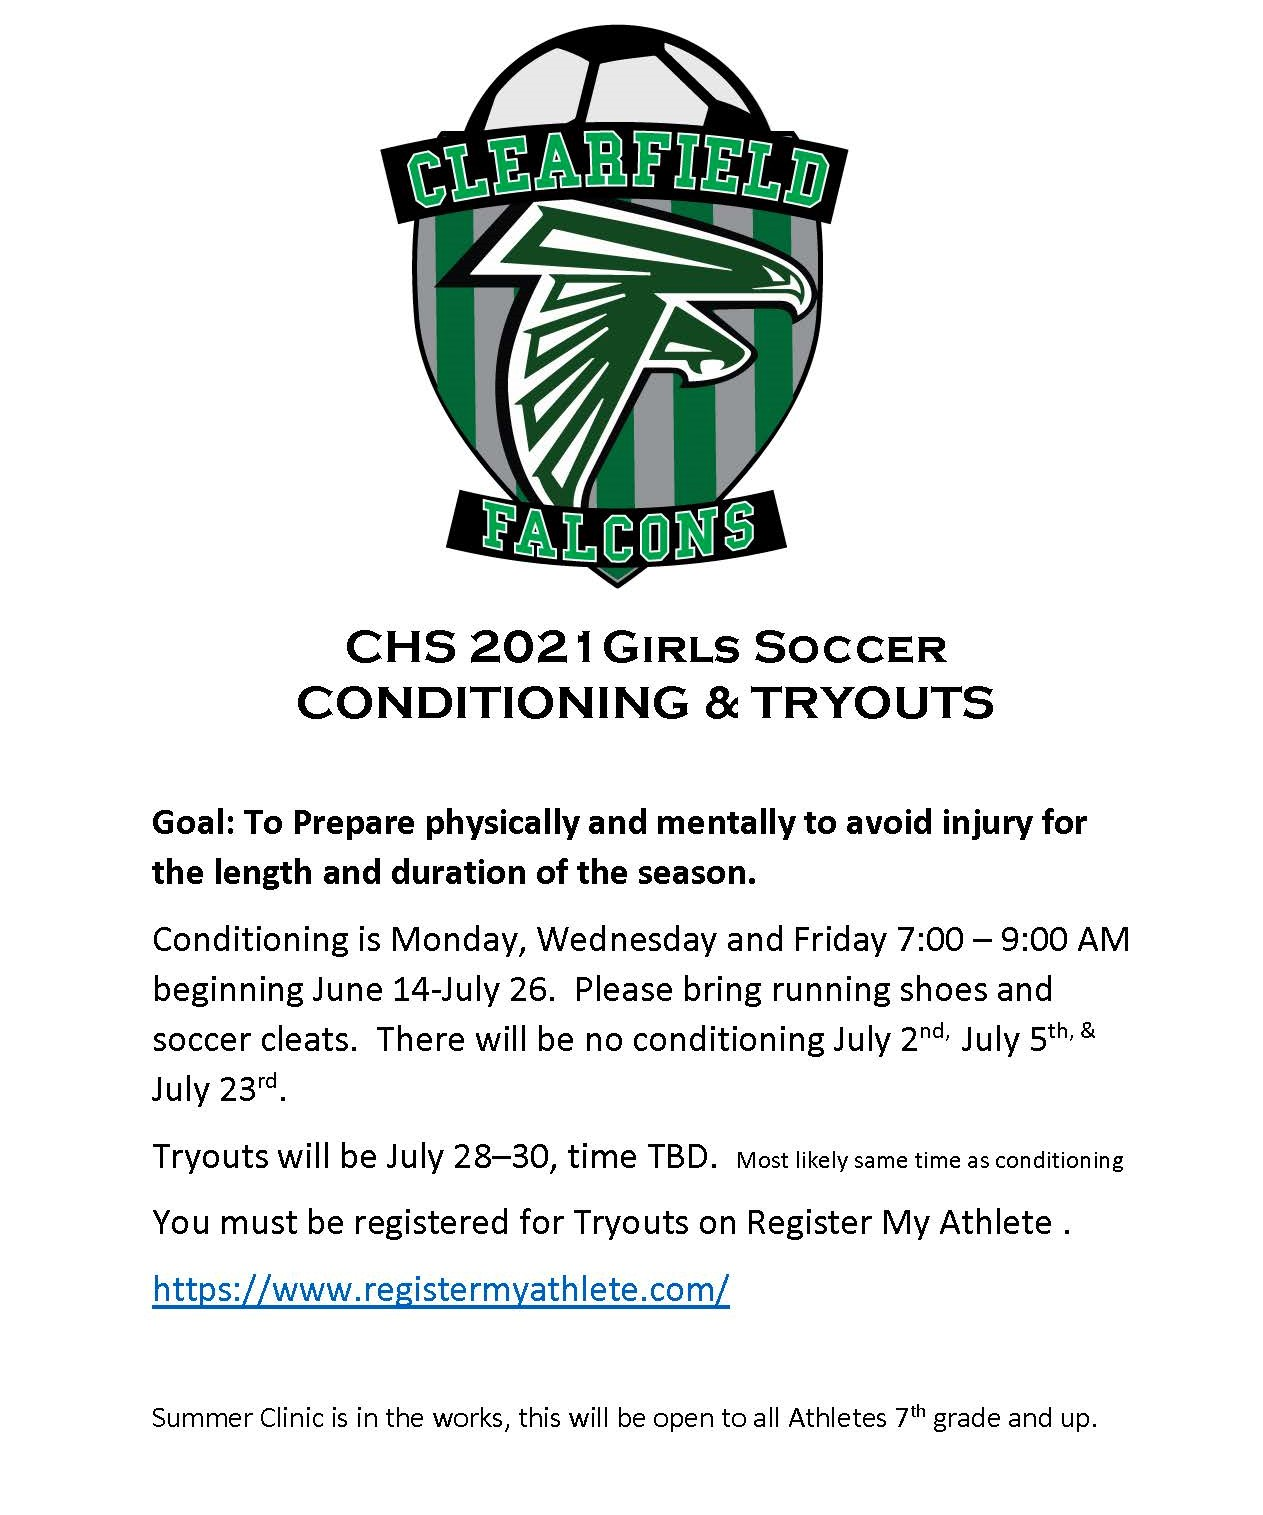 CHS 2021 Girls Soccer Conditioning & Tryouts